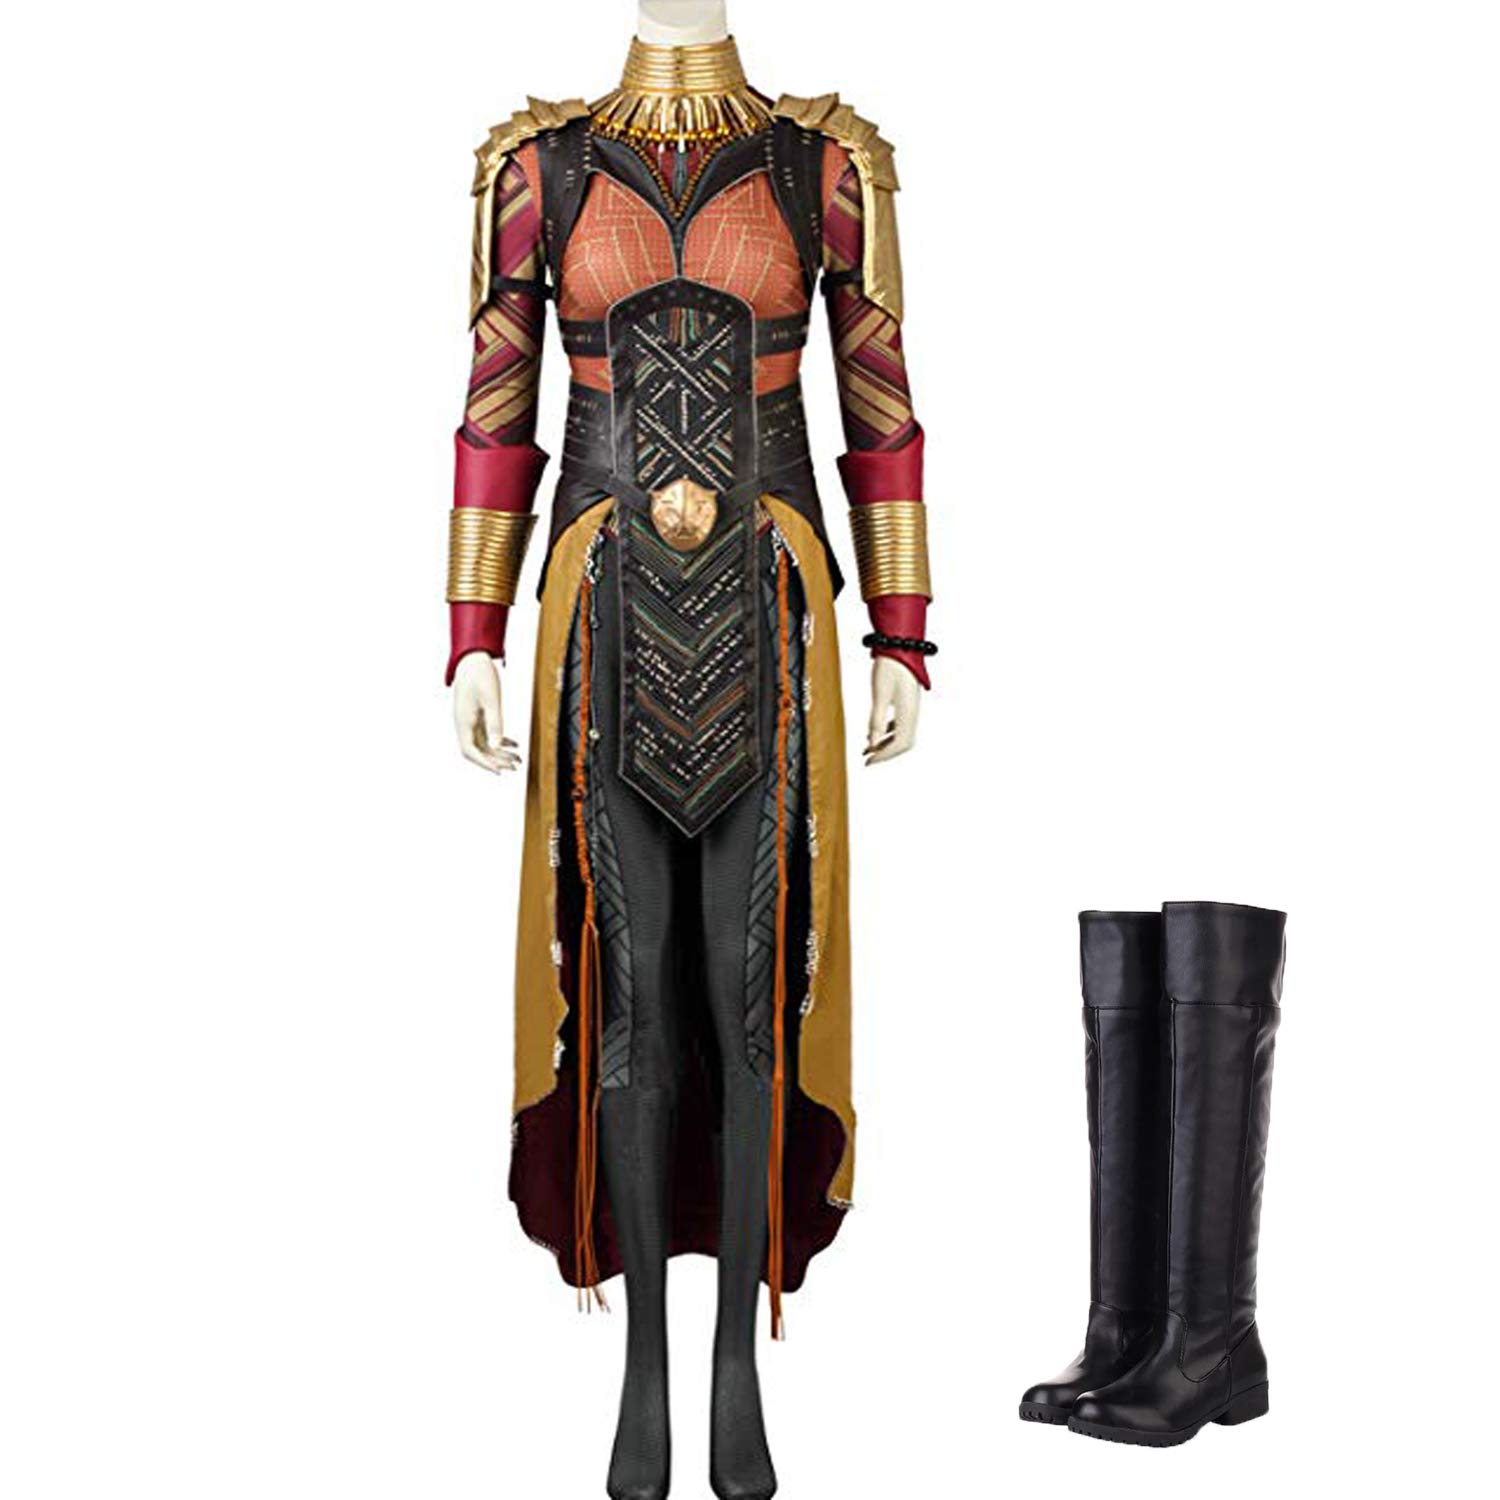 Marvel Avengers Infinity War Black Panther Deluxe Adult Costume